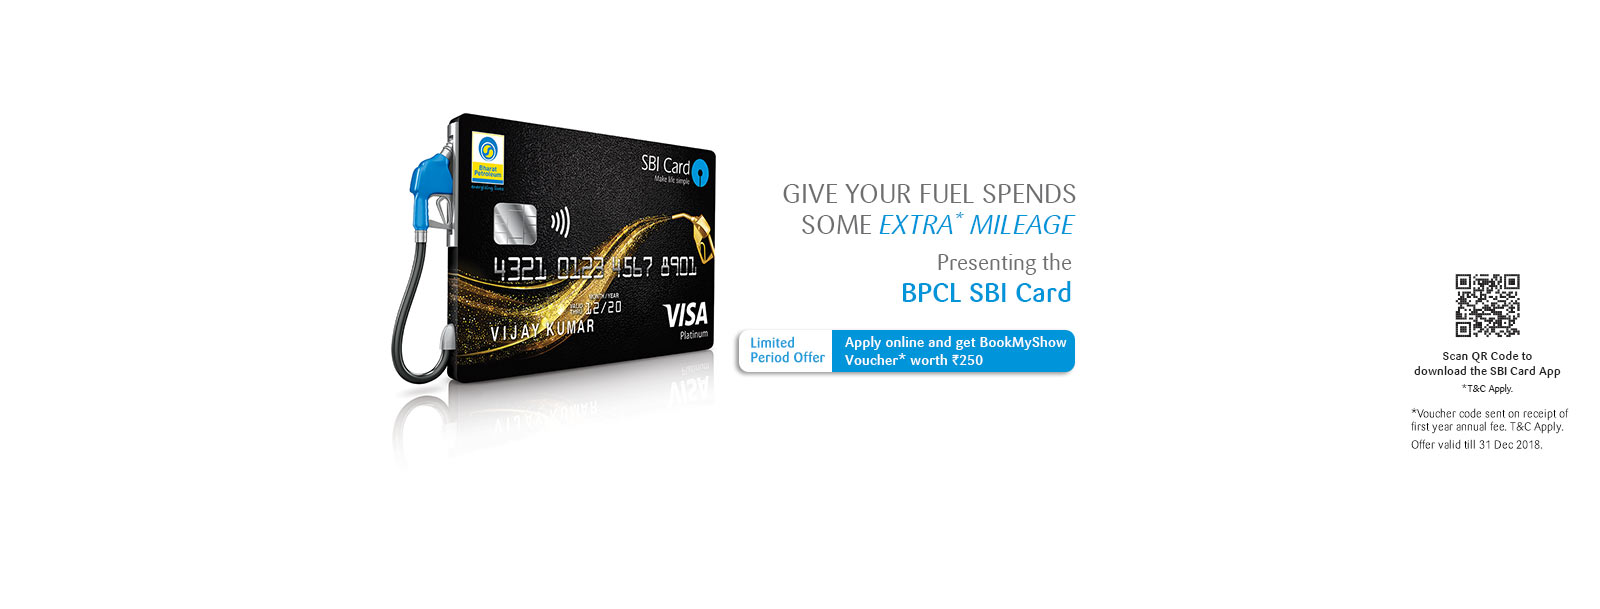 Sbi credit card online best credit cards in india apply now bpcl altavistaventures Gallery